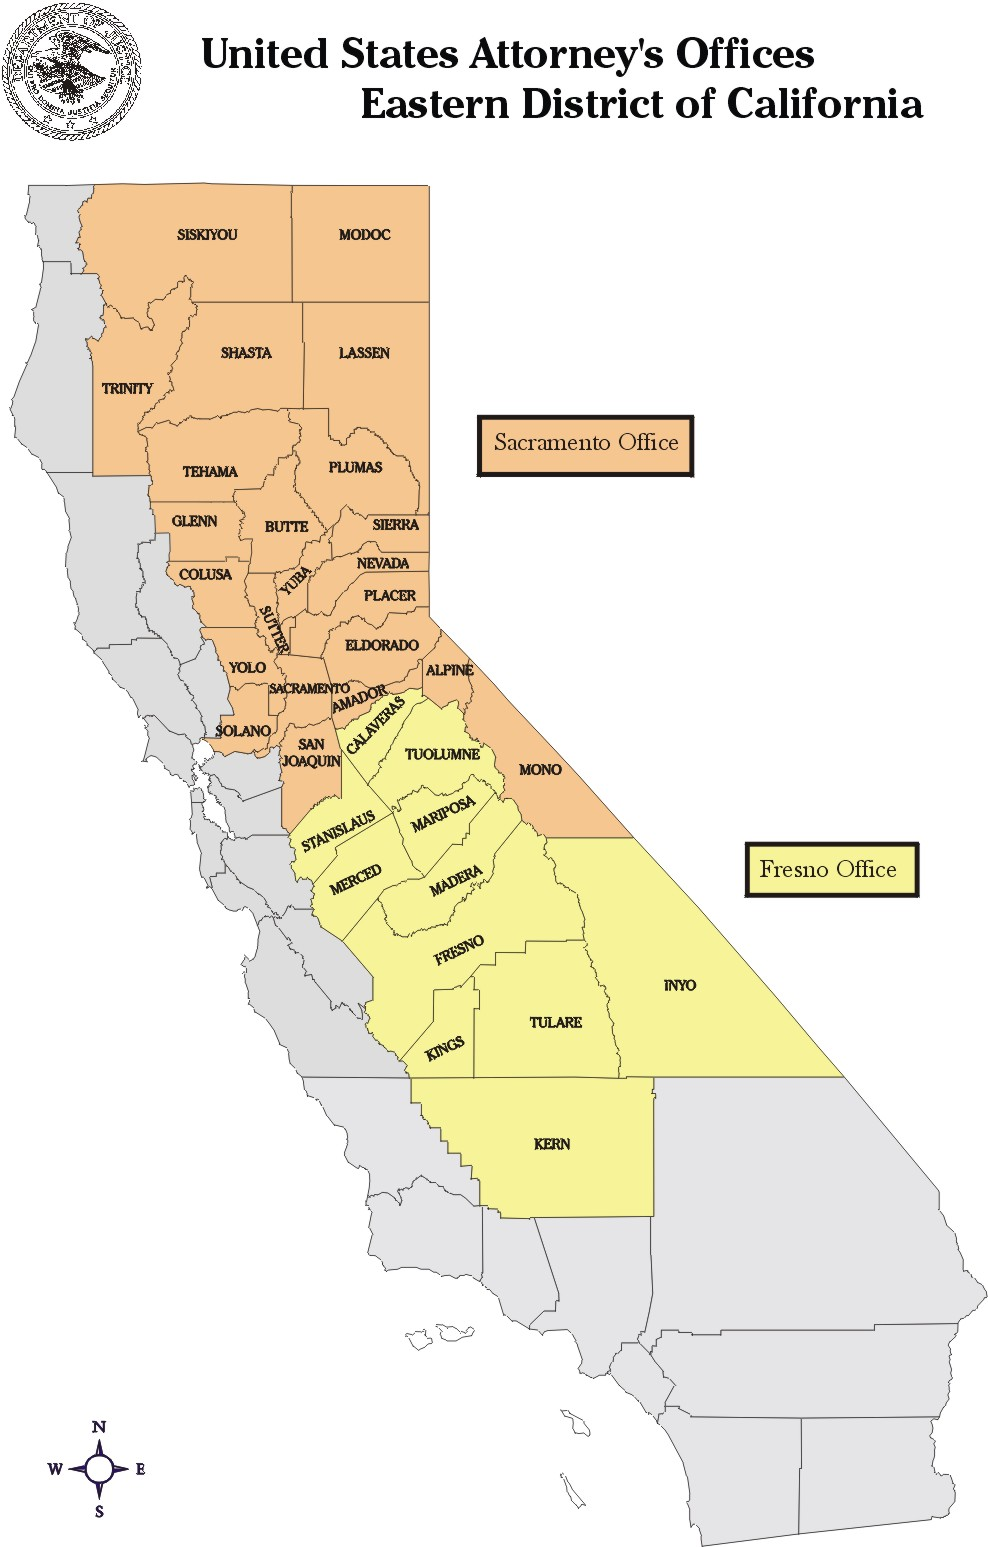 Eastern District of California | Department of Justice